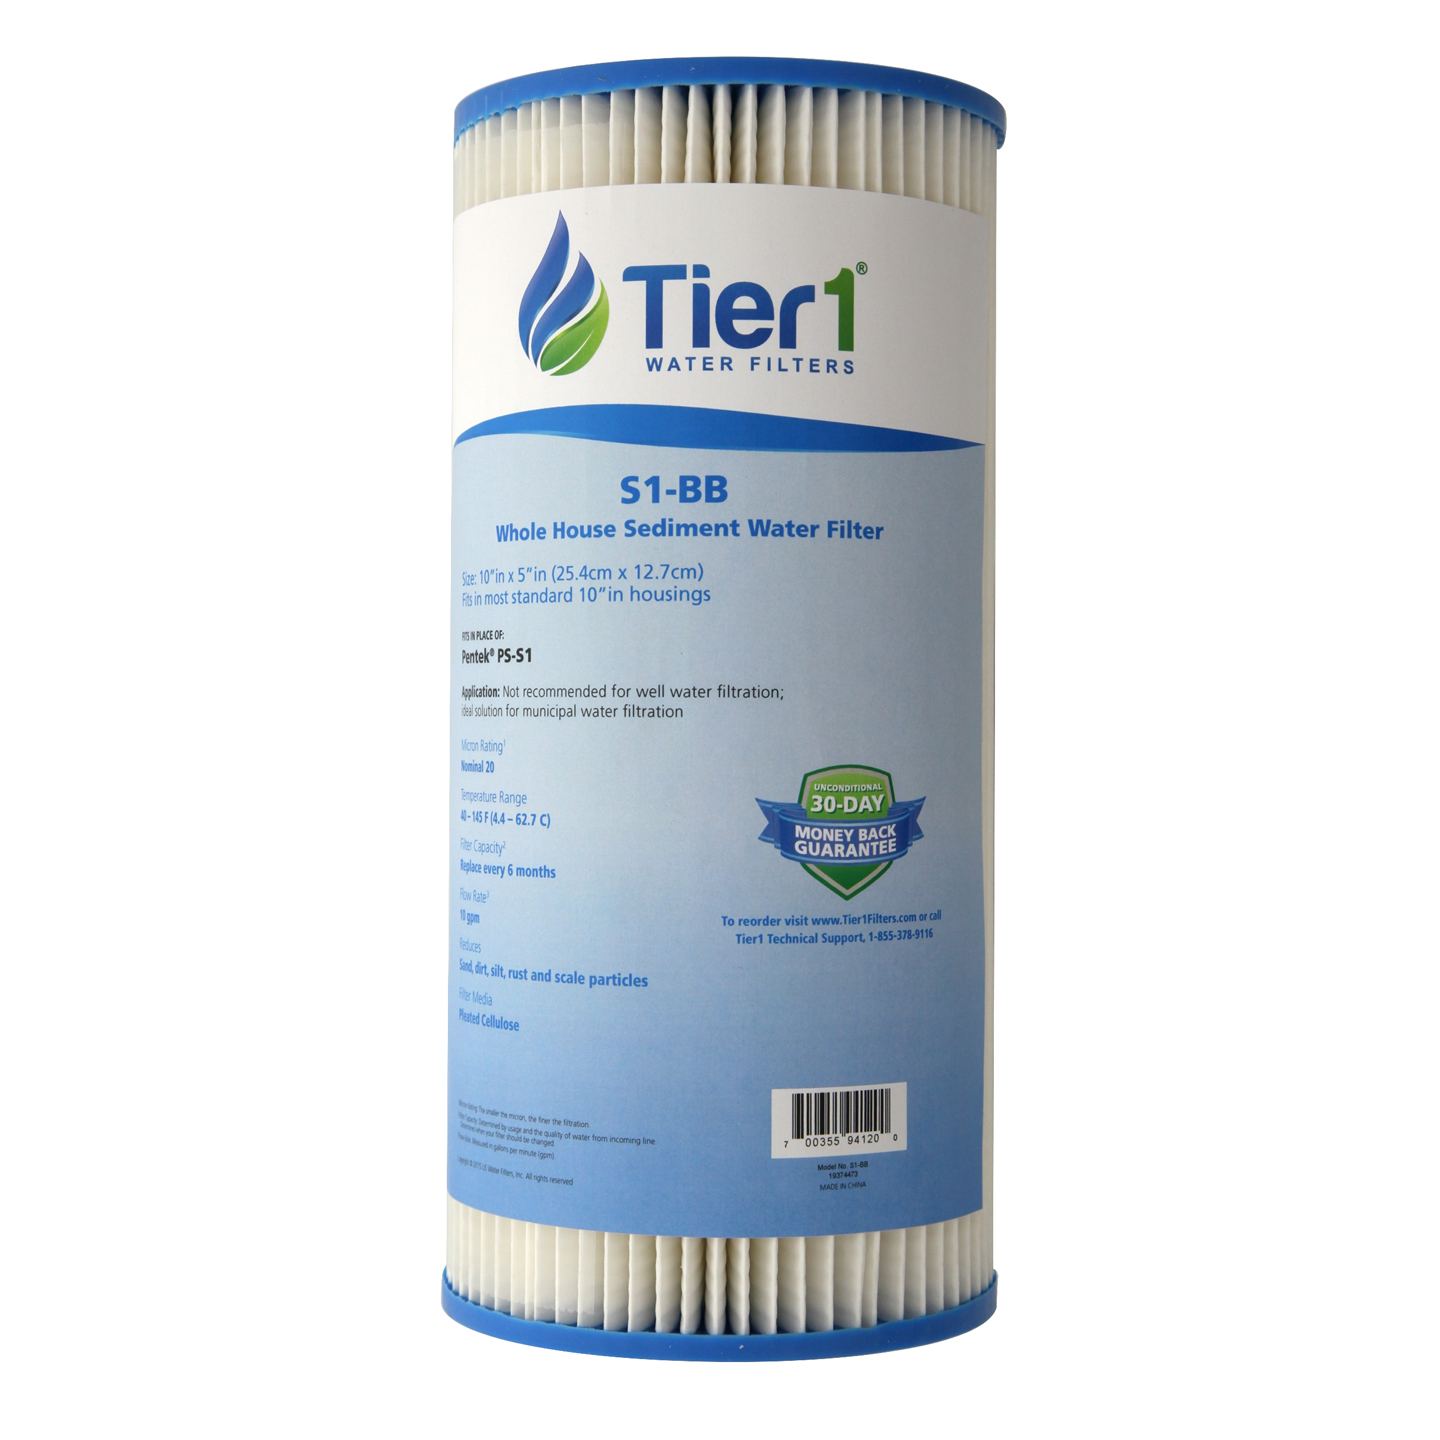 10 X 4.5 Pleated Cellulose Replacement Filter by Tier1 (20 micron) TIER1-S1-BB